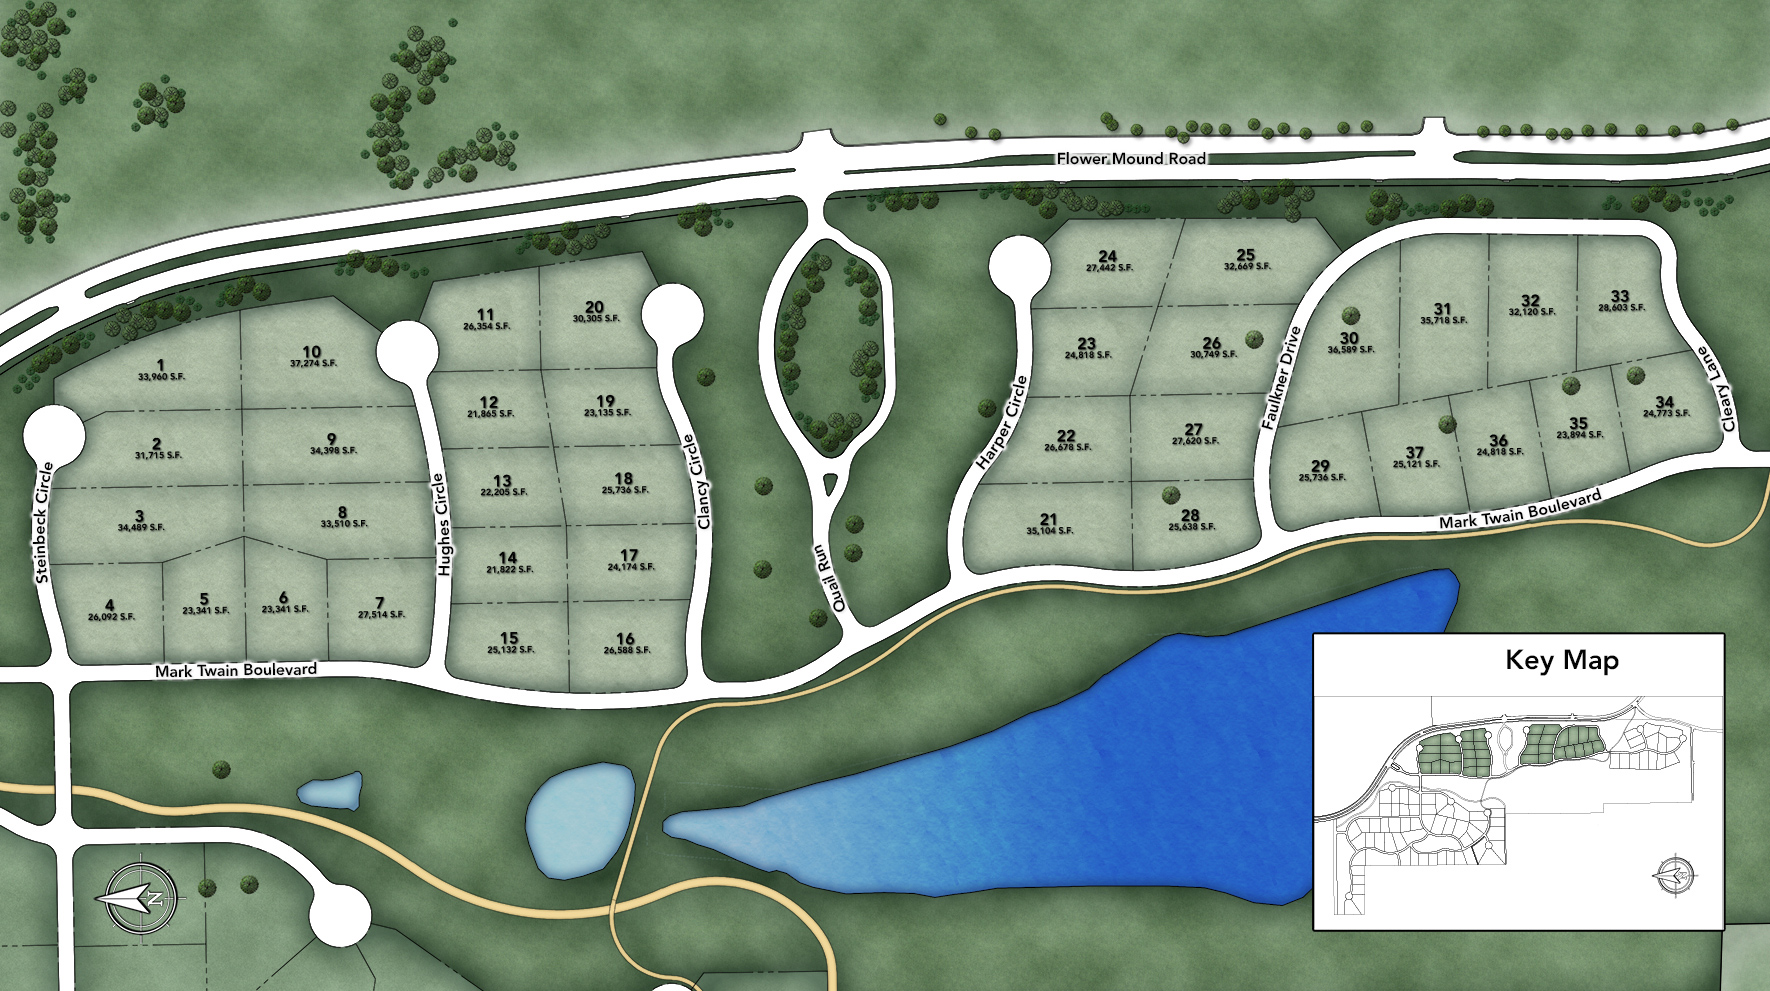 New Luxury Homes For Sale in Flower Mound TX